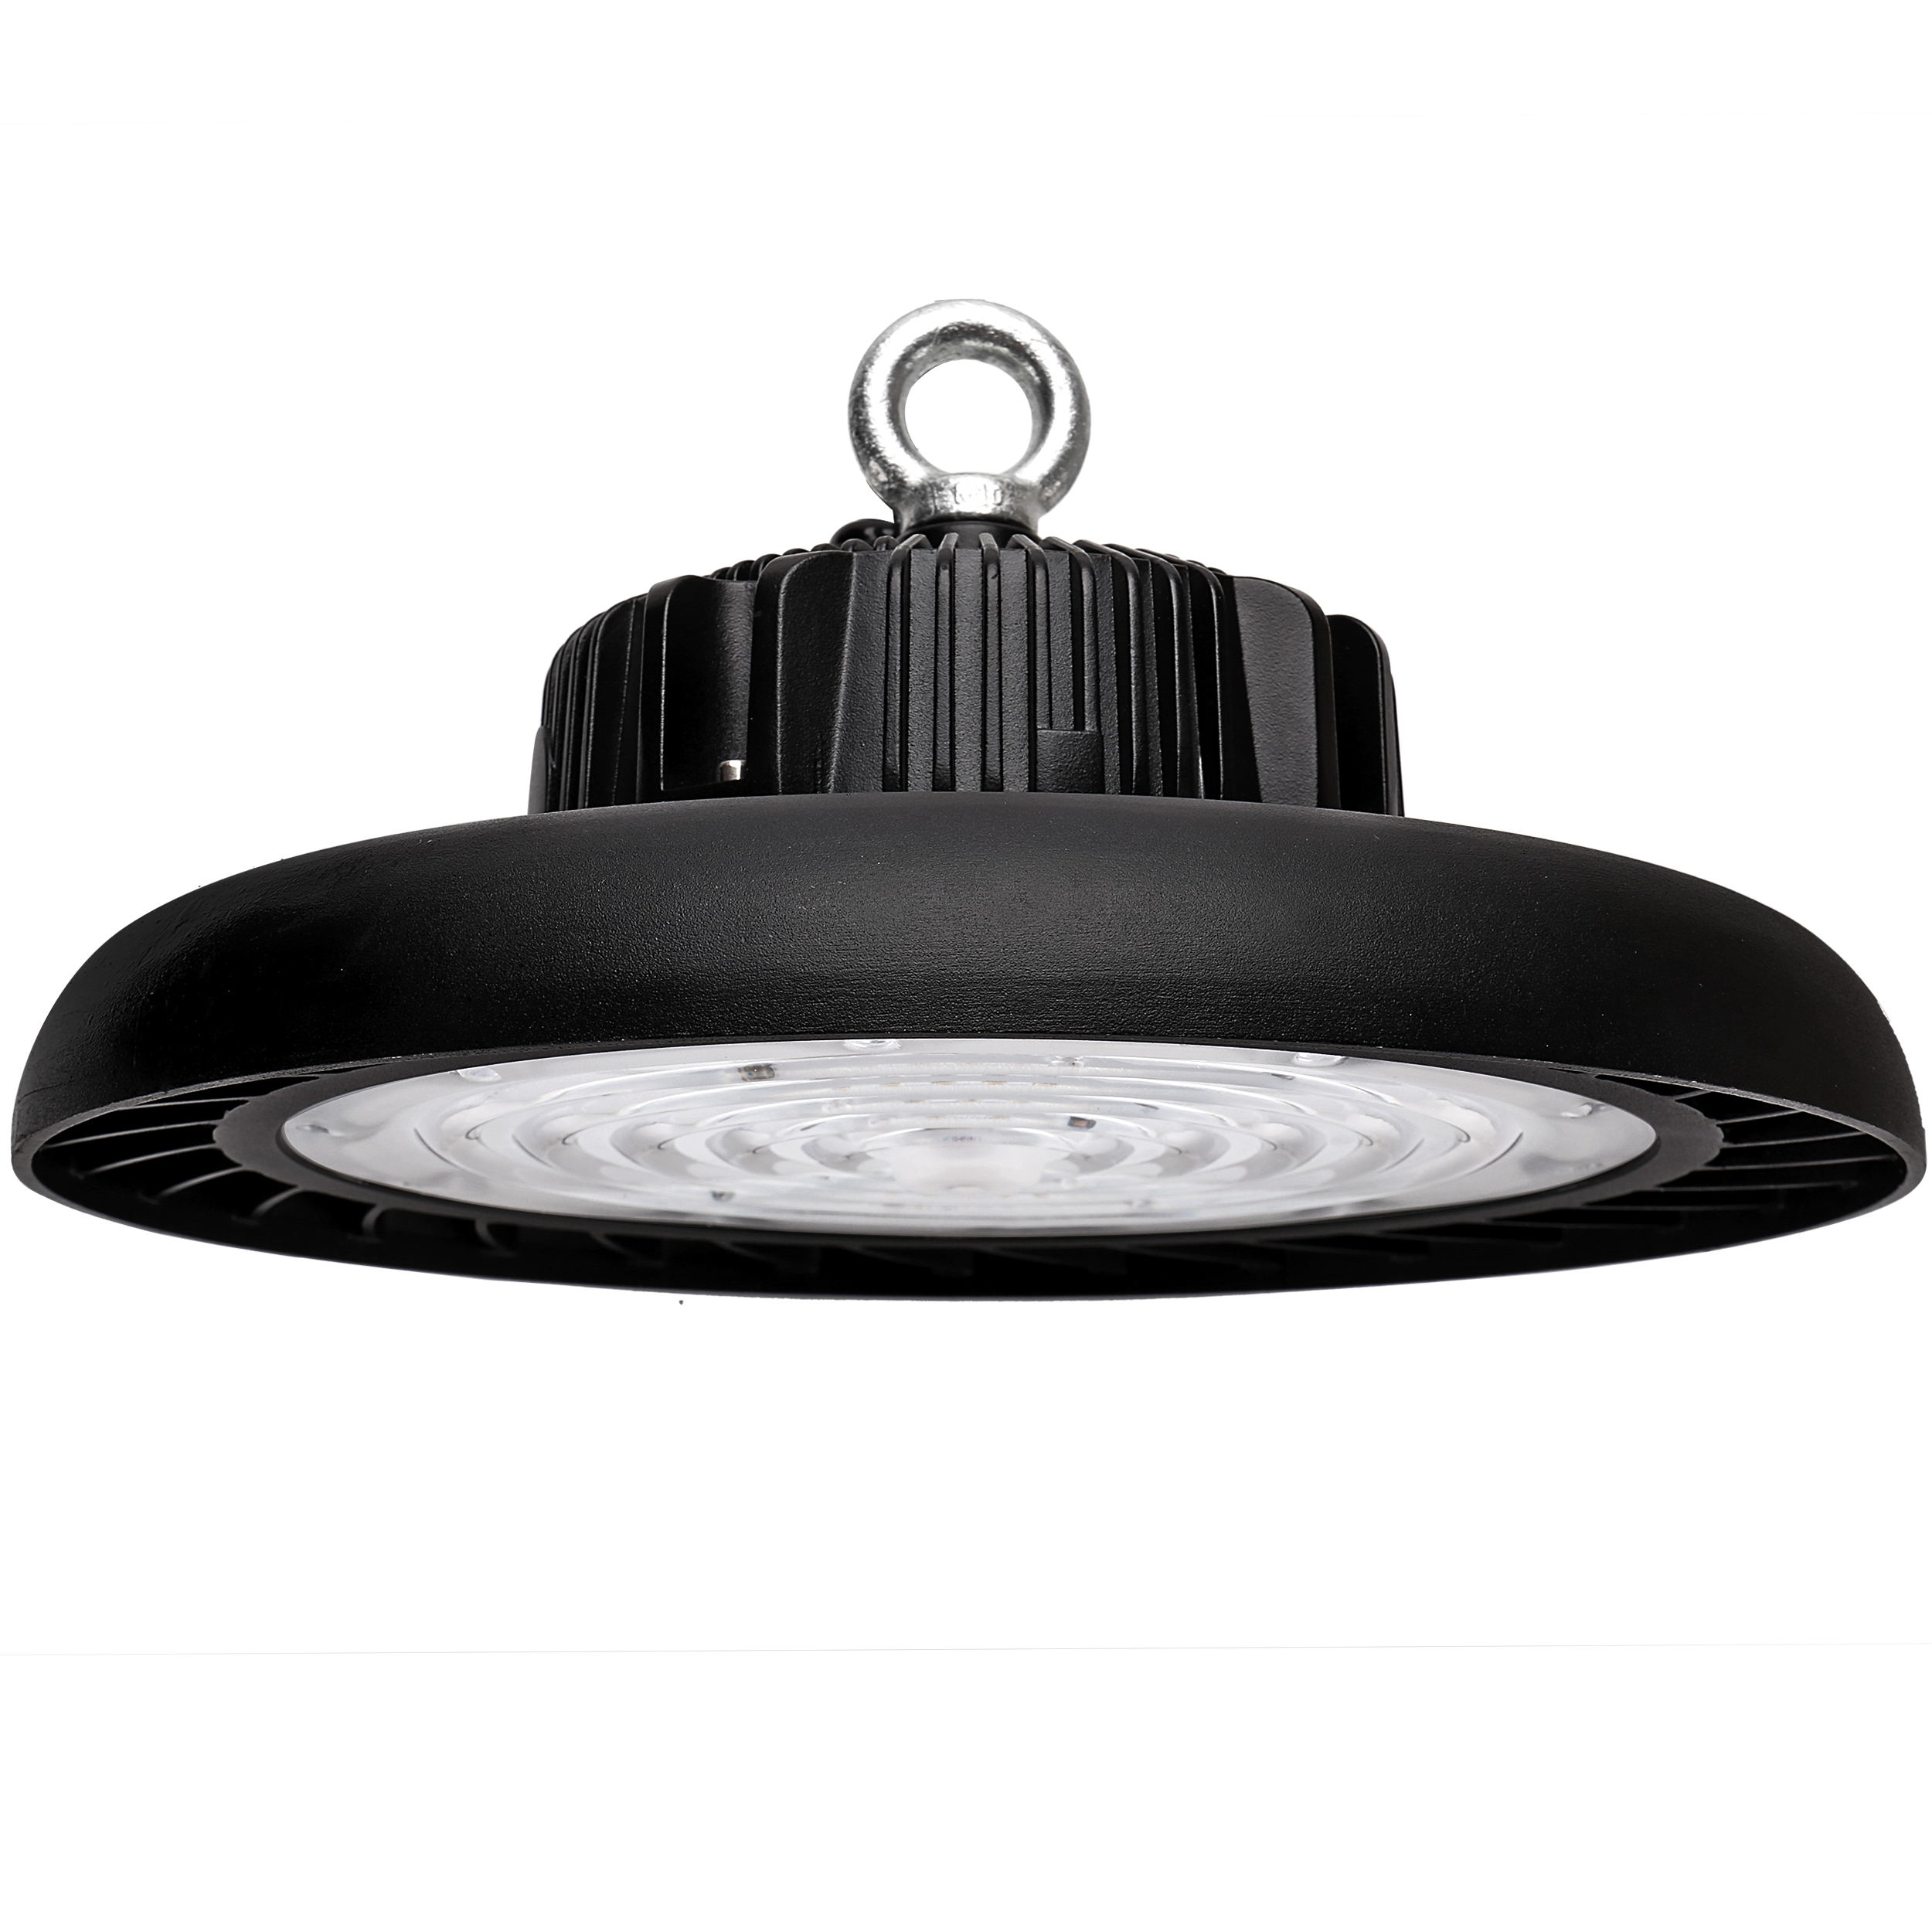 100W UFO LED High <font><b>Bay</b></font> Light for warehouse lighting <font><b>3</b></font> years warranty low <font><b>bay</b></font> lights wrokshop garage lighting Easeking factory image